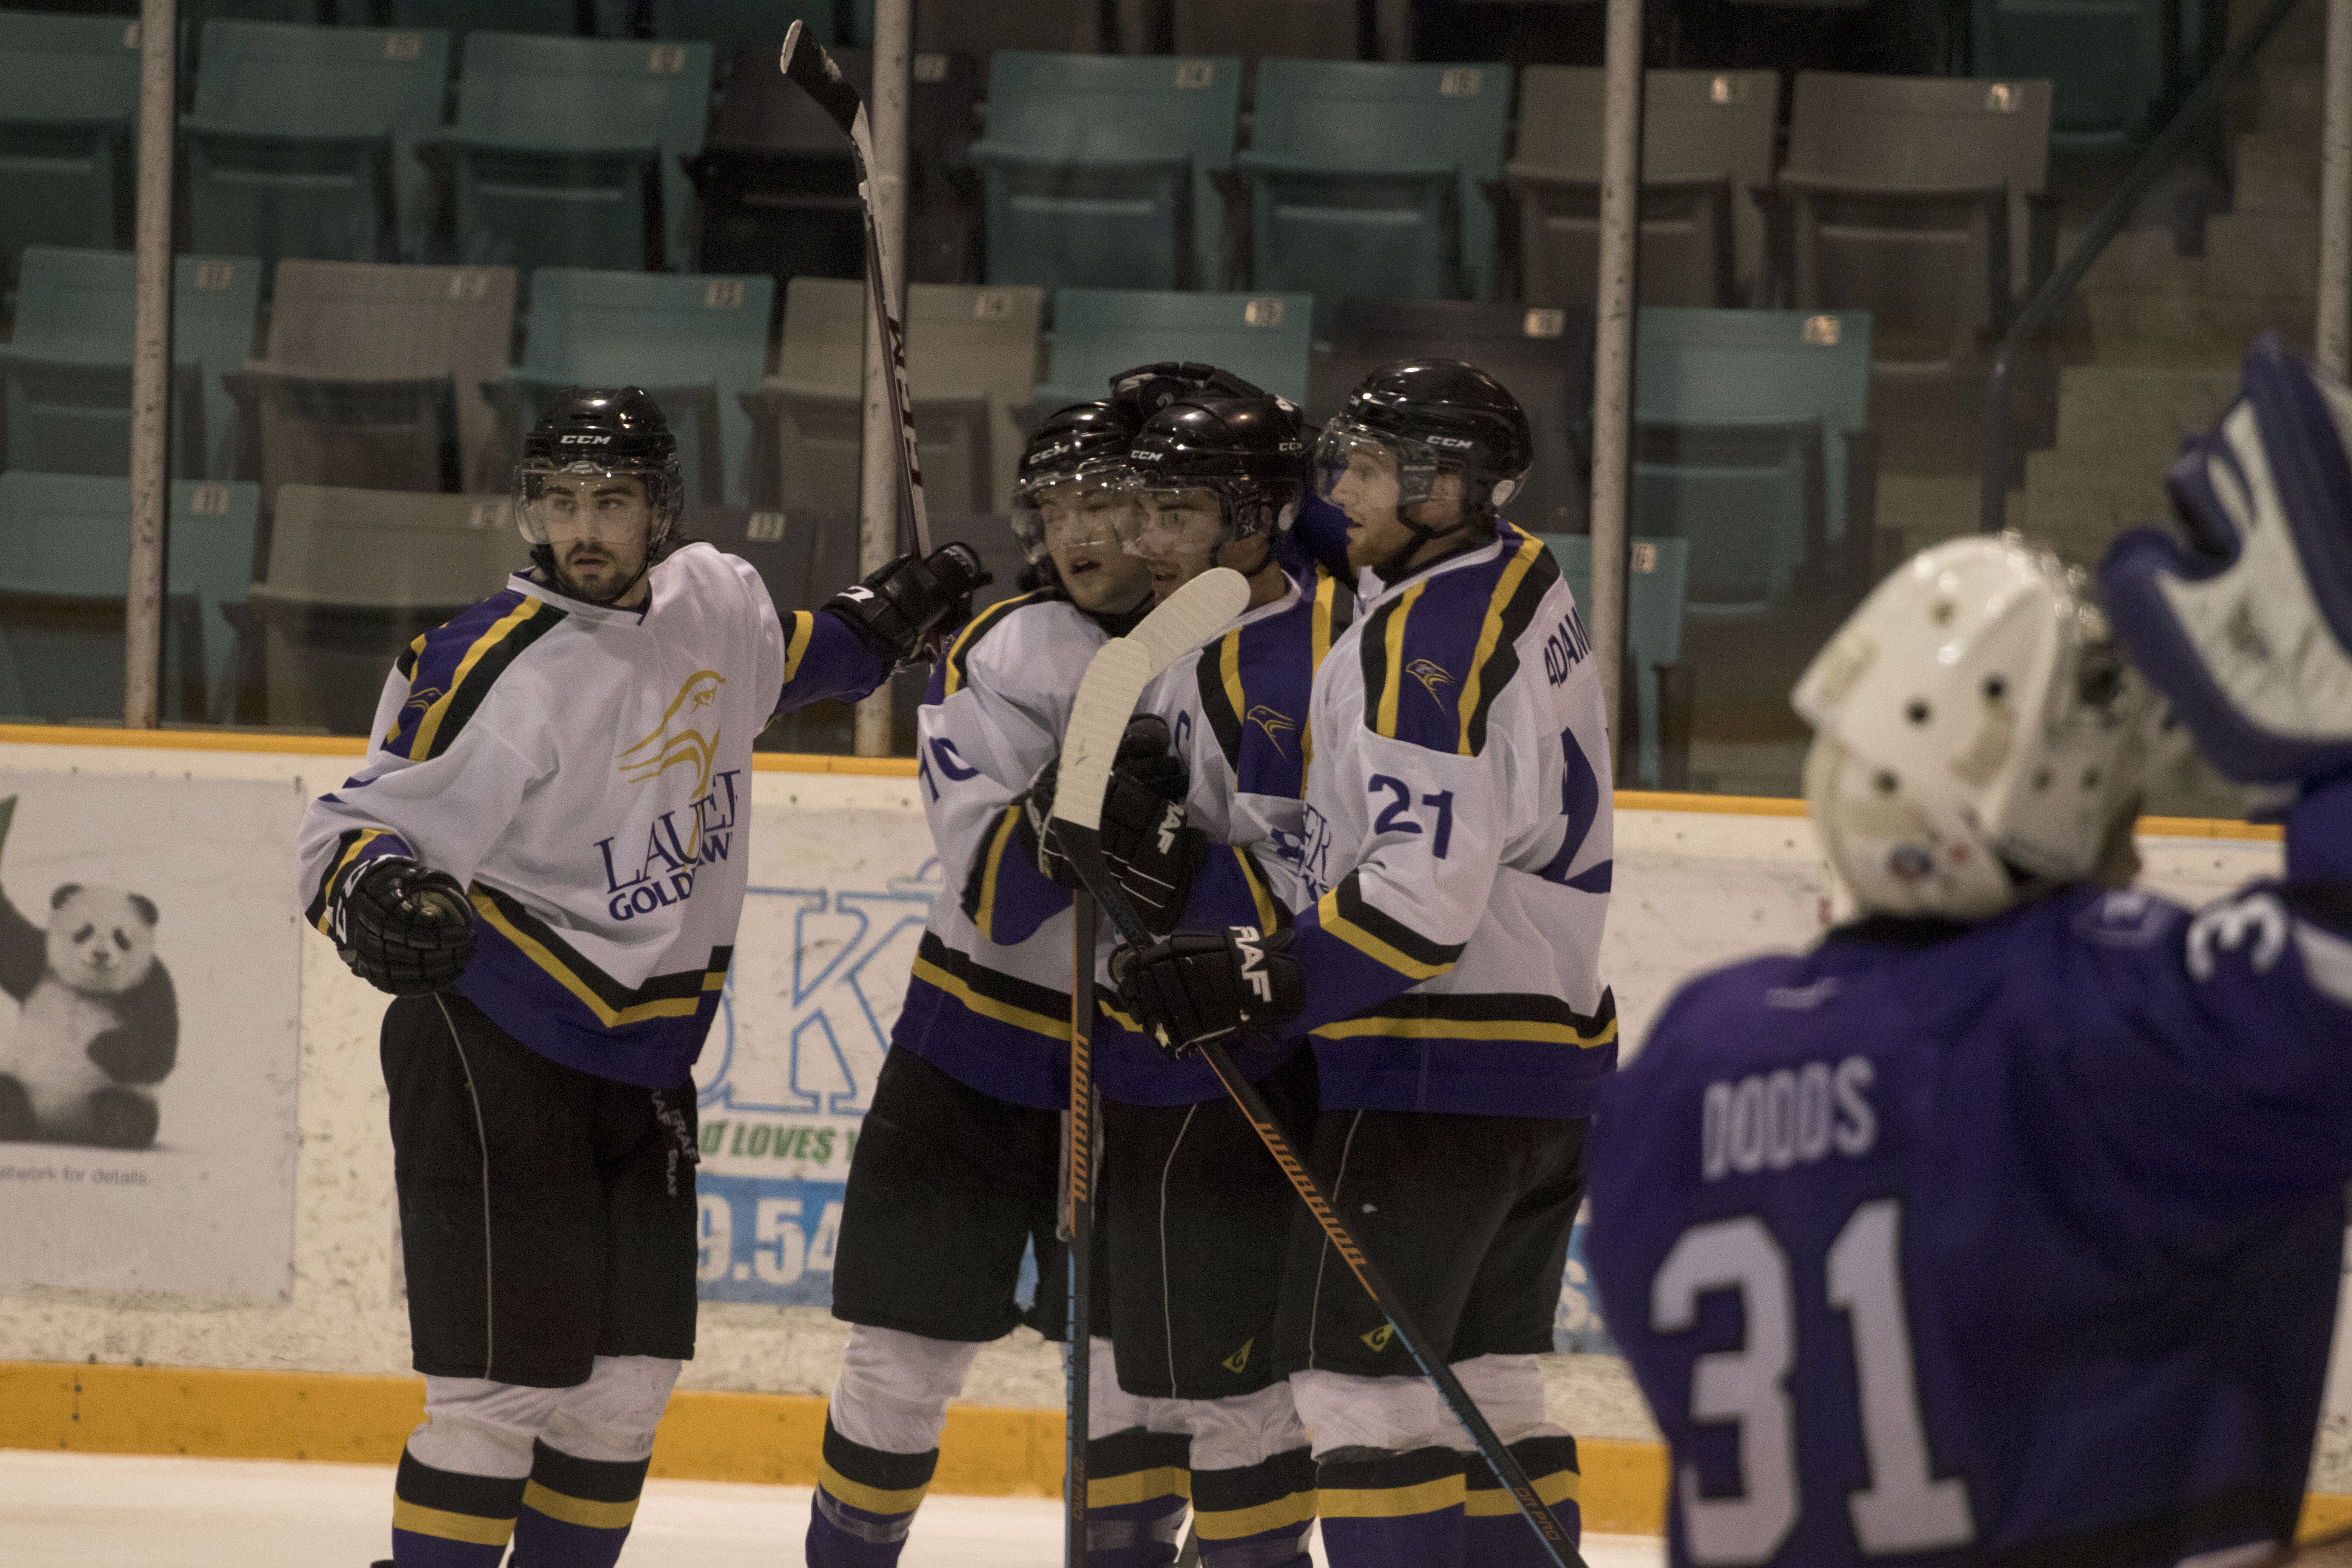 Golden Hawks starting to play a 'better' game